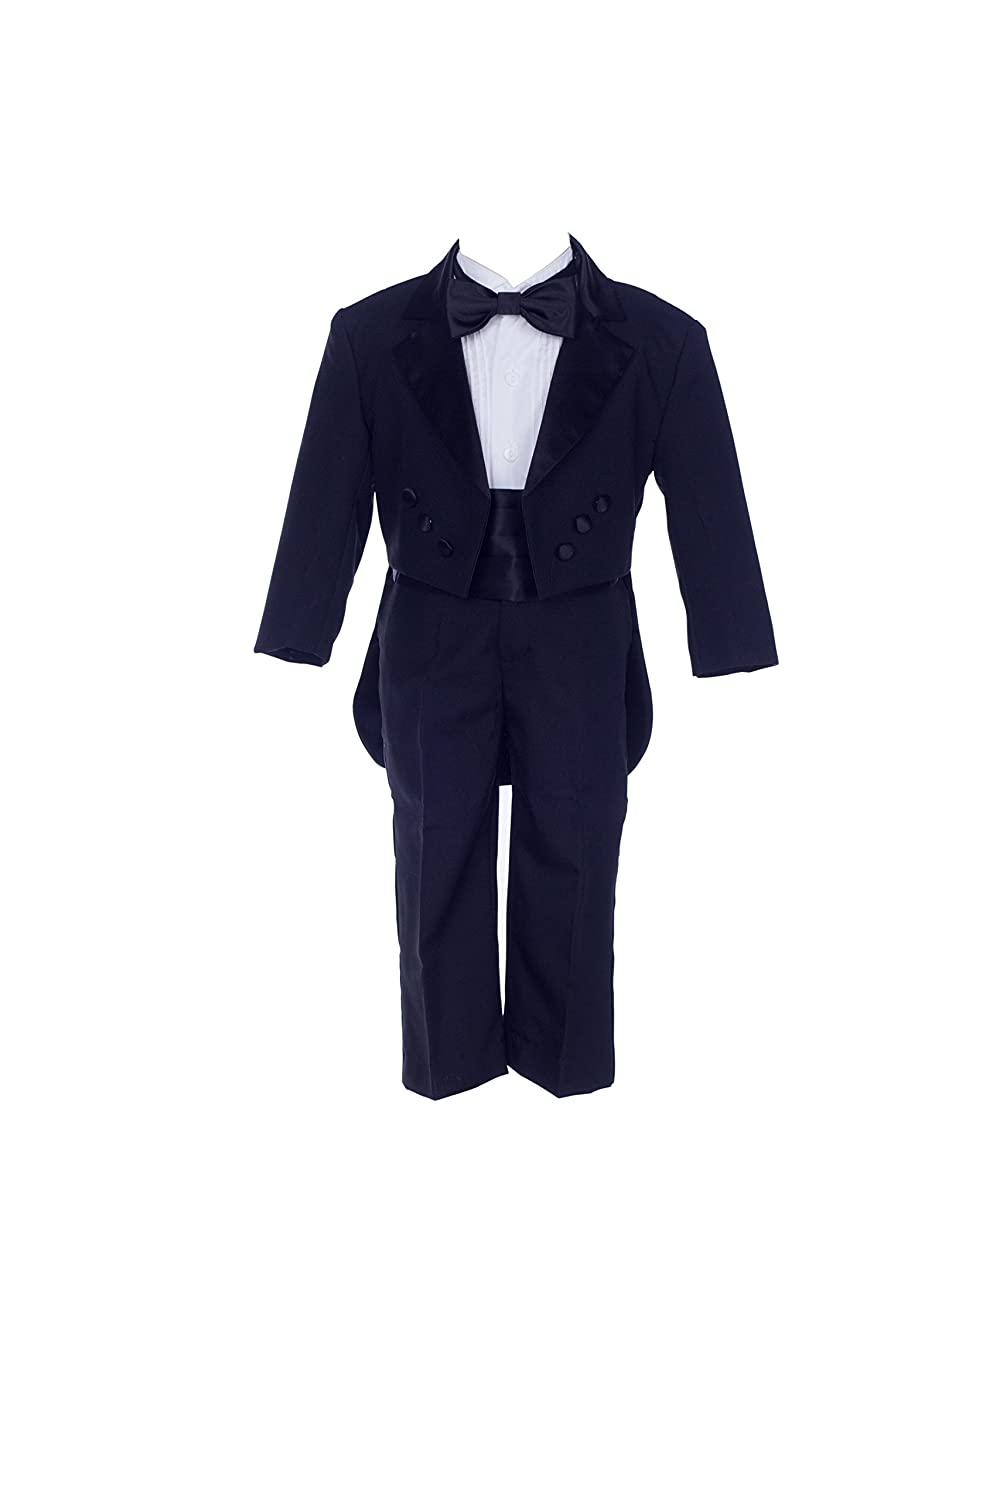 Black Boy Teen Tuxedo Suit with Tail Formal 5-Piece Set Wedding Pageant Party